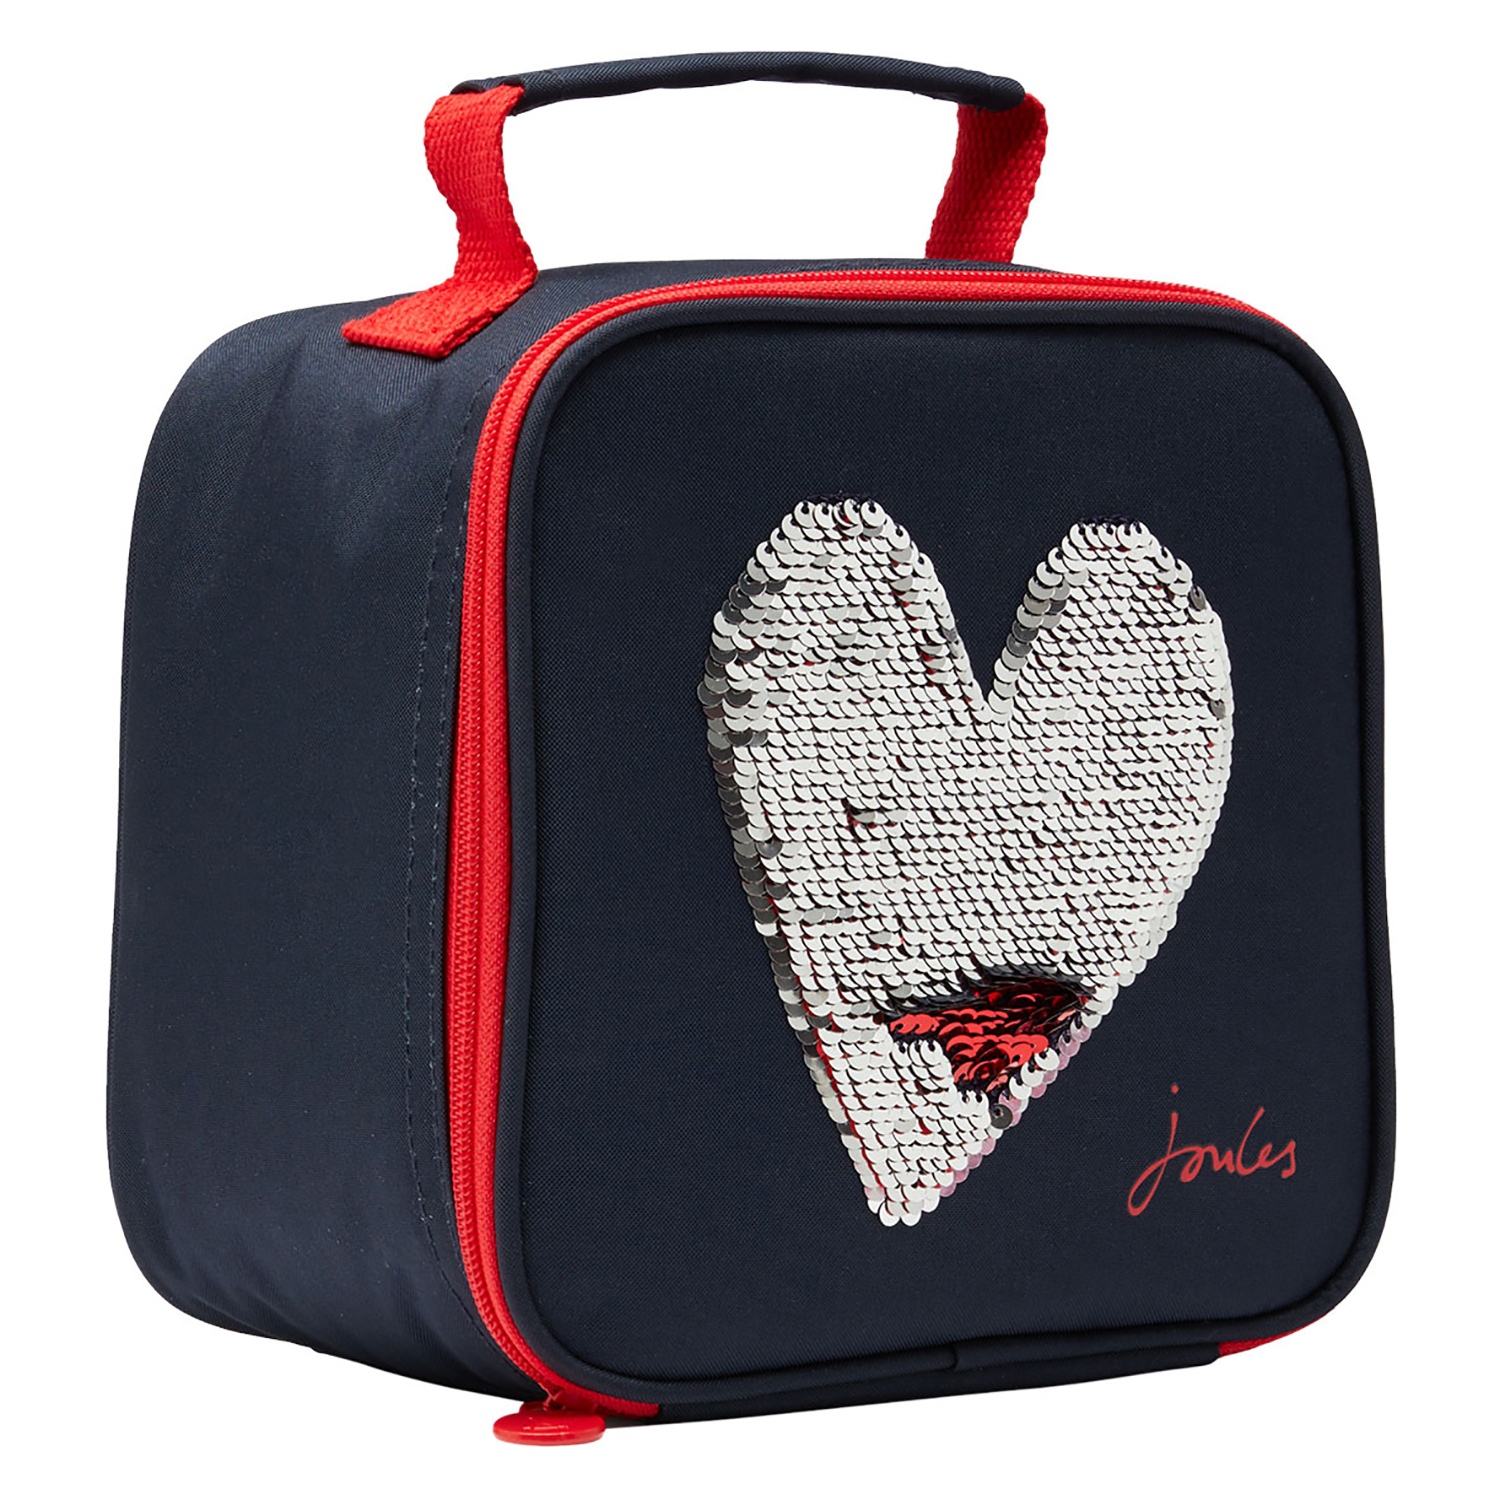 Blue Heart One Size Joules Munch Kids Bag Lunch